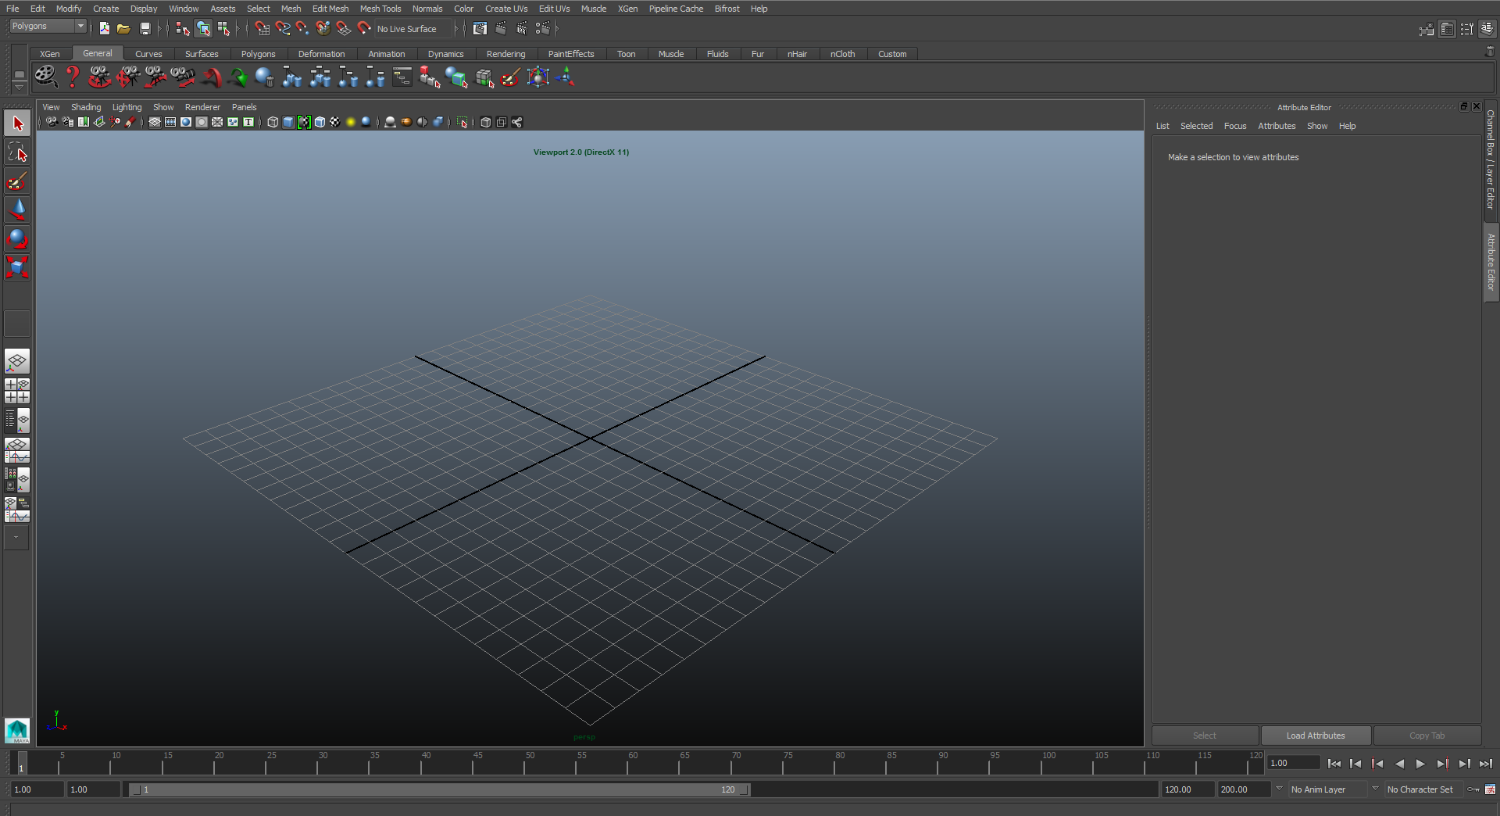 The problem with running Maya on the Surface Pro or any screen under 17-inches is that its default UI is extremely cluttered. The top of the standard interface includes six rows of menus, icons, and shelves.